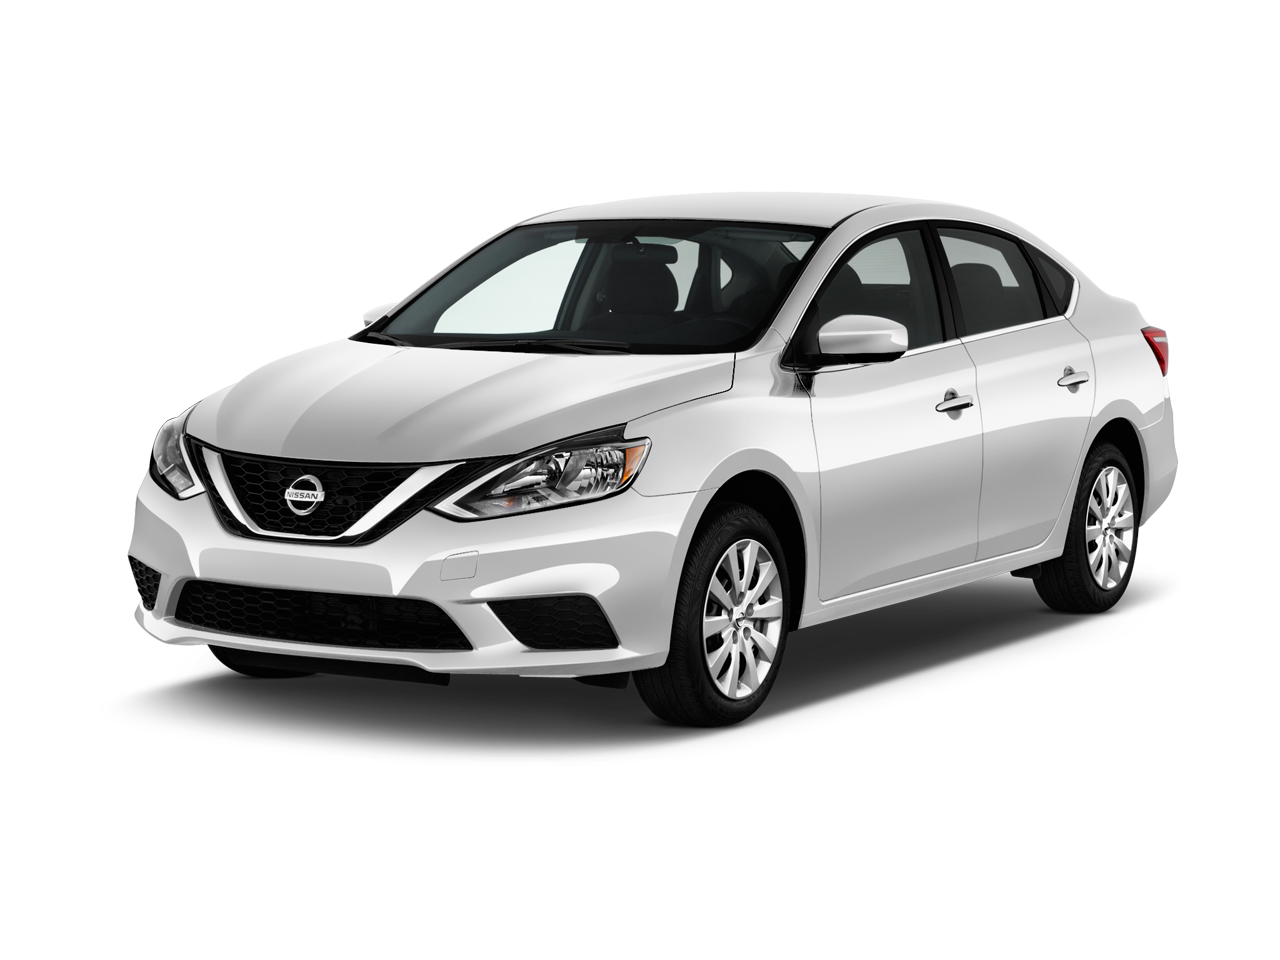 Nissan Sentra Owners Manual: Environmental factors influence the rate of corrosion